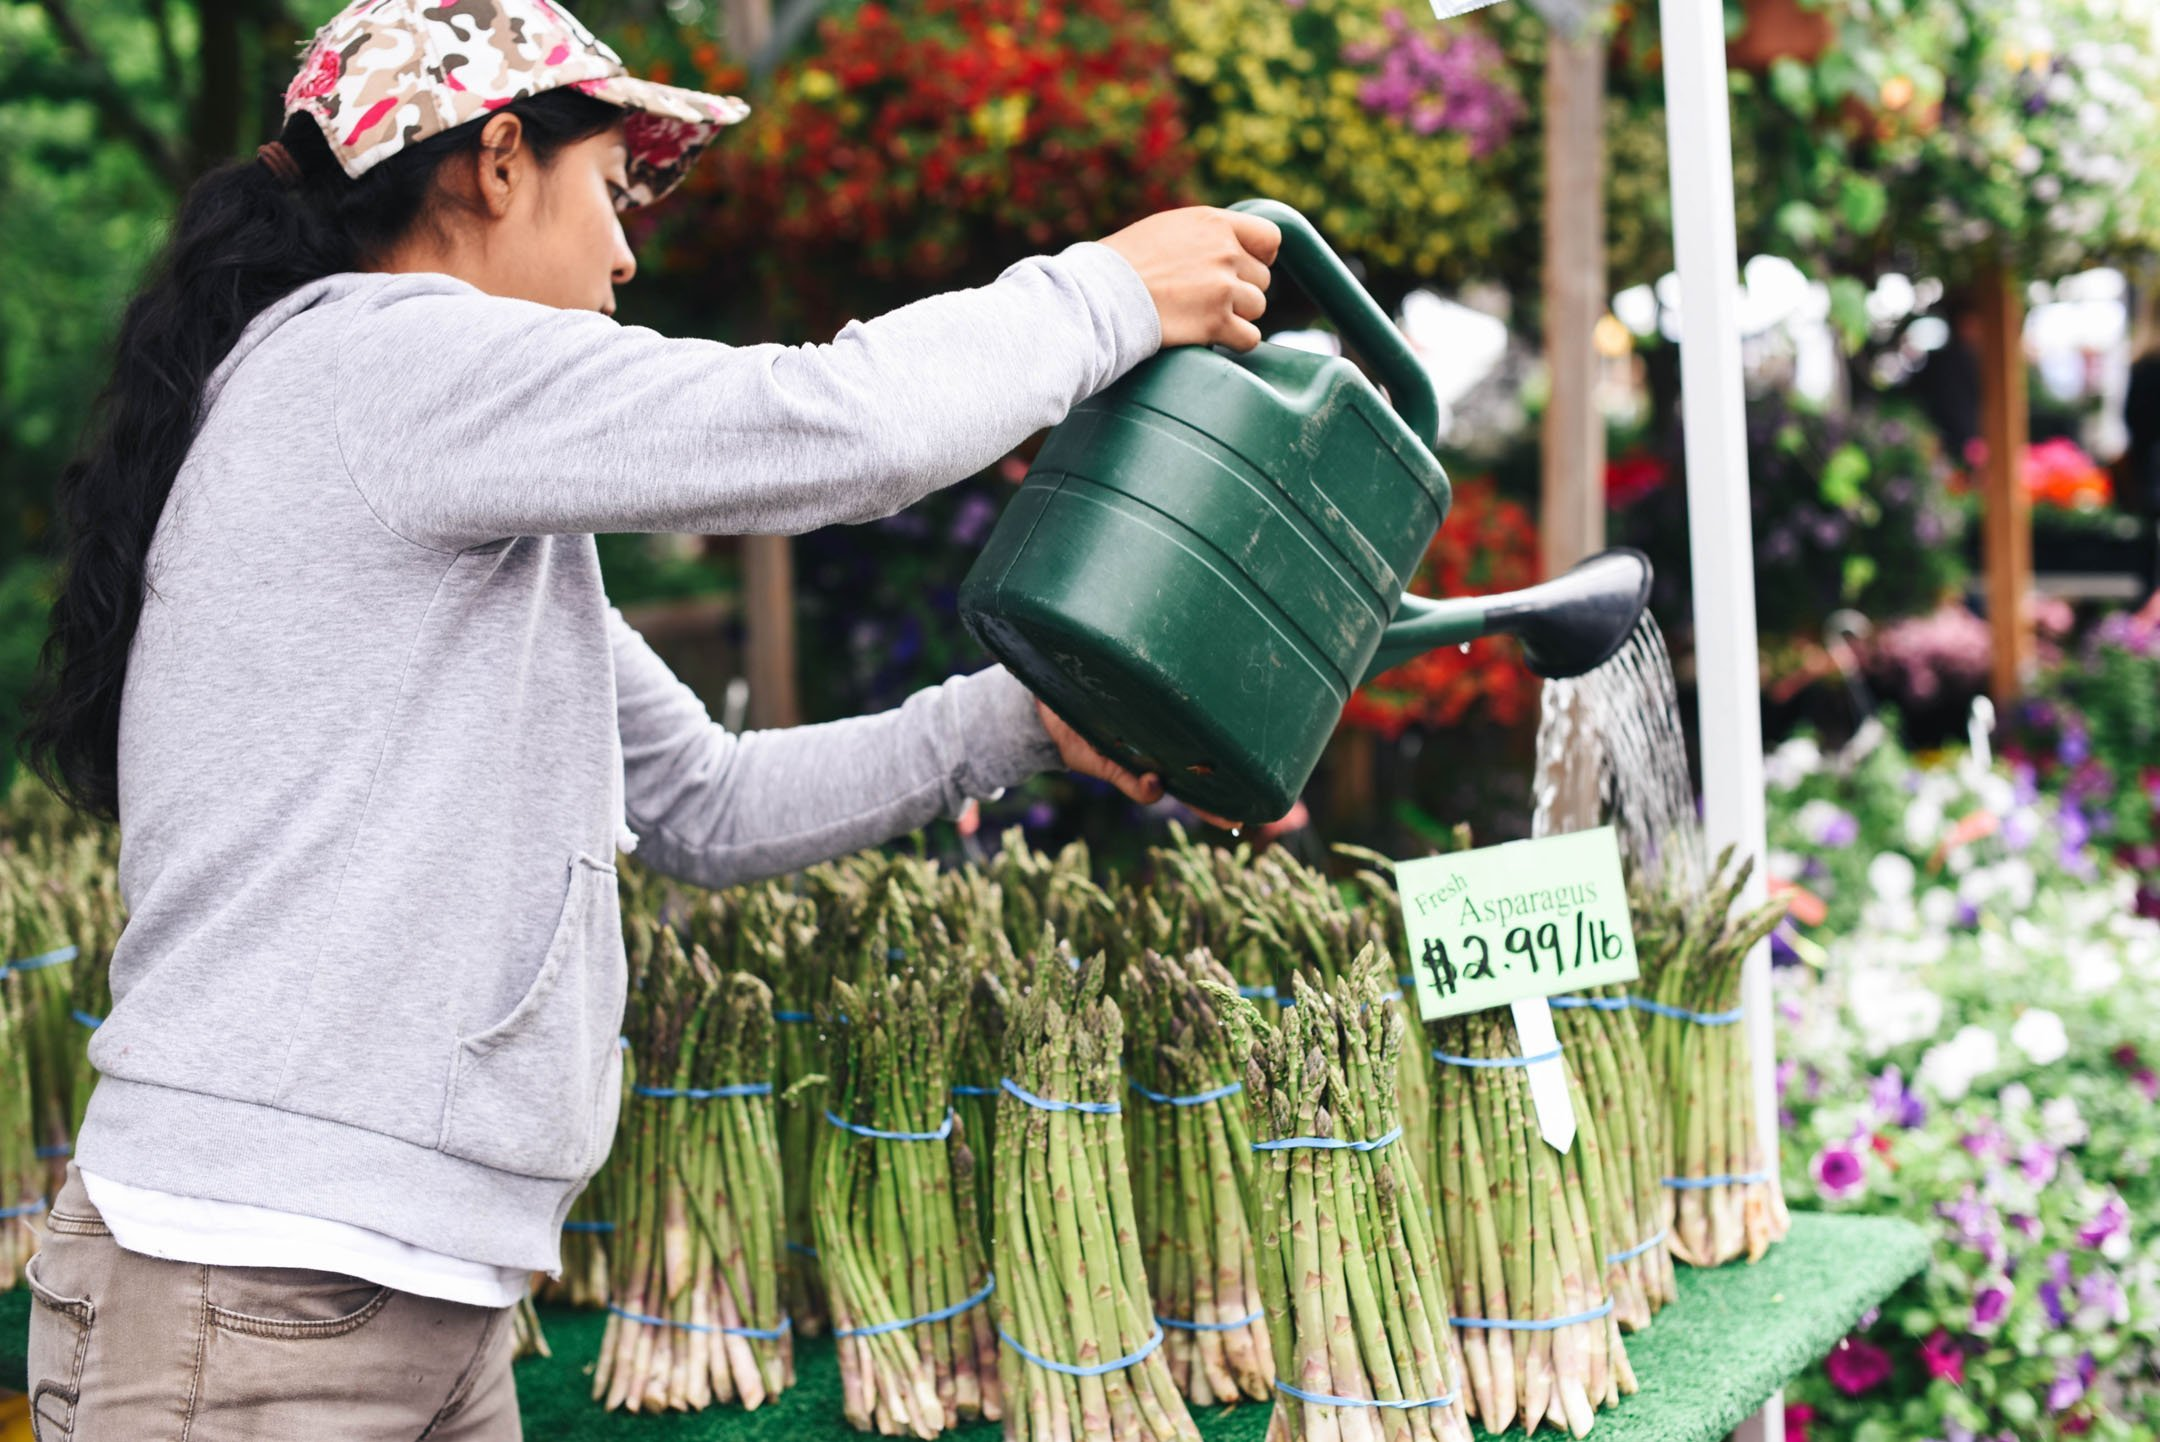 Lake Oswego Farmers Market watering asparagus